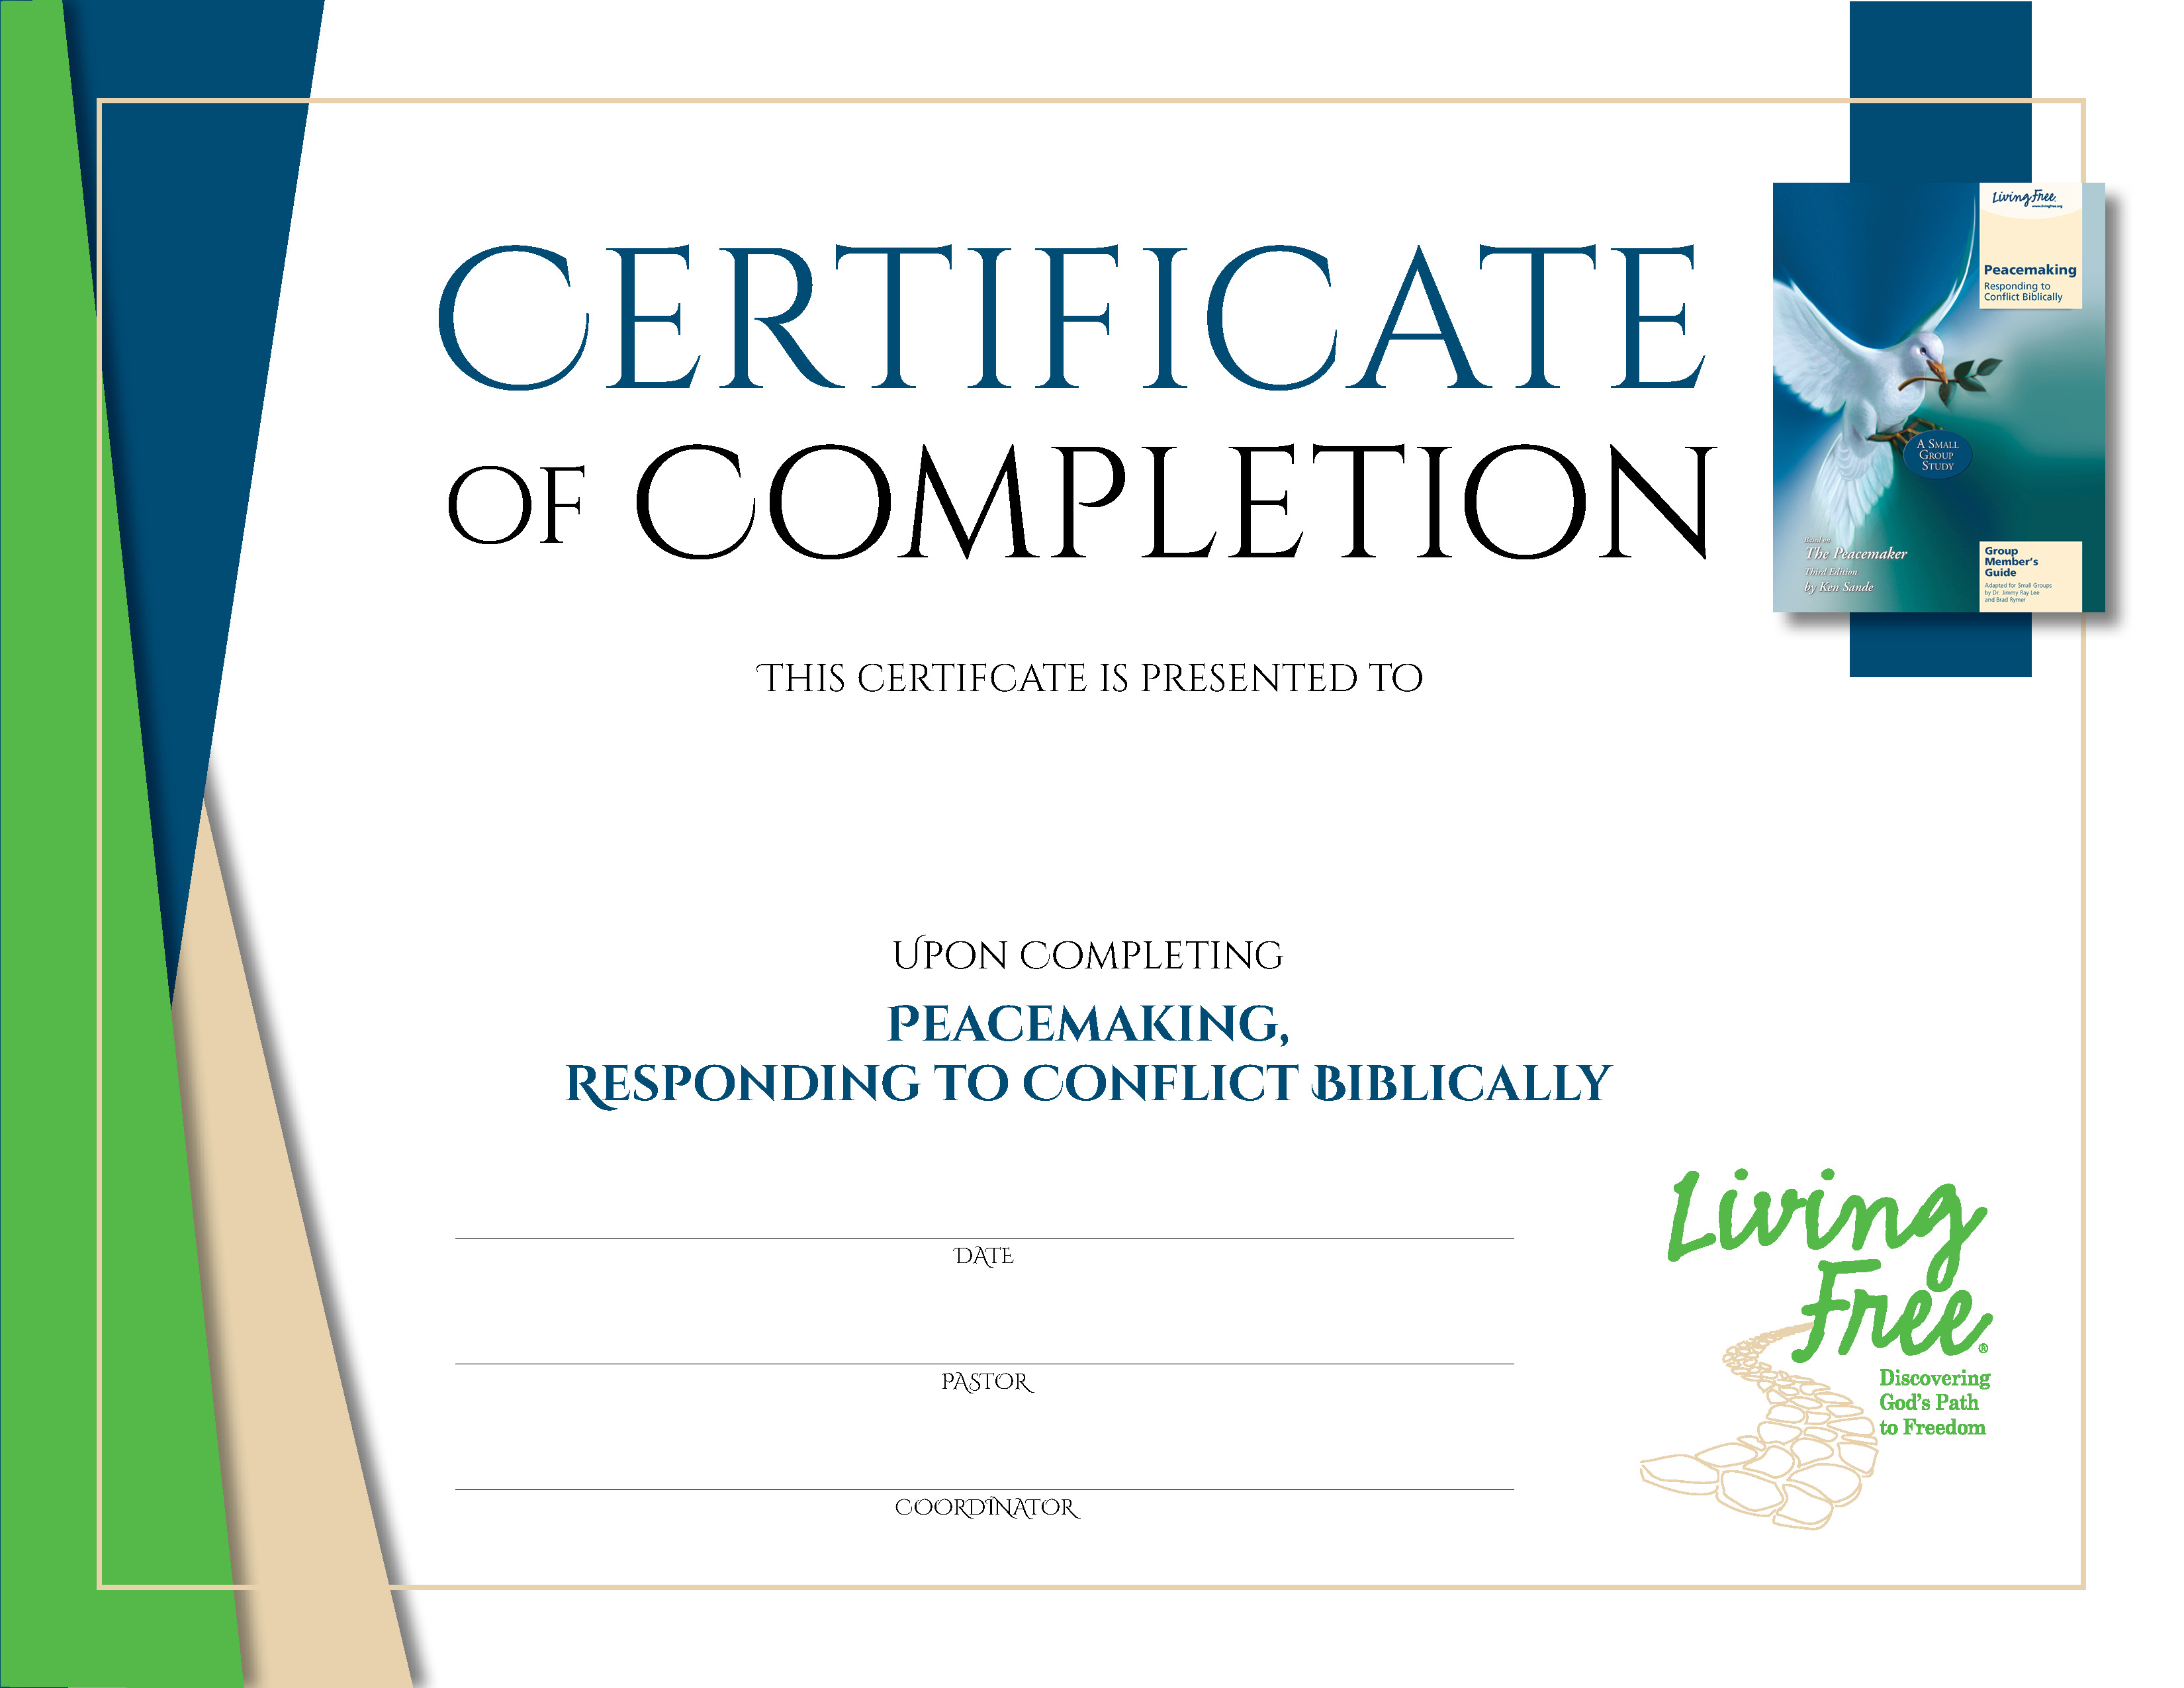 Peacemaking Digital Certificate